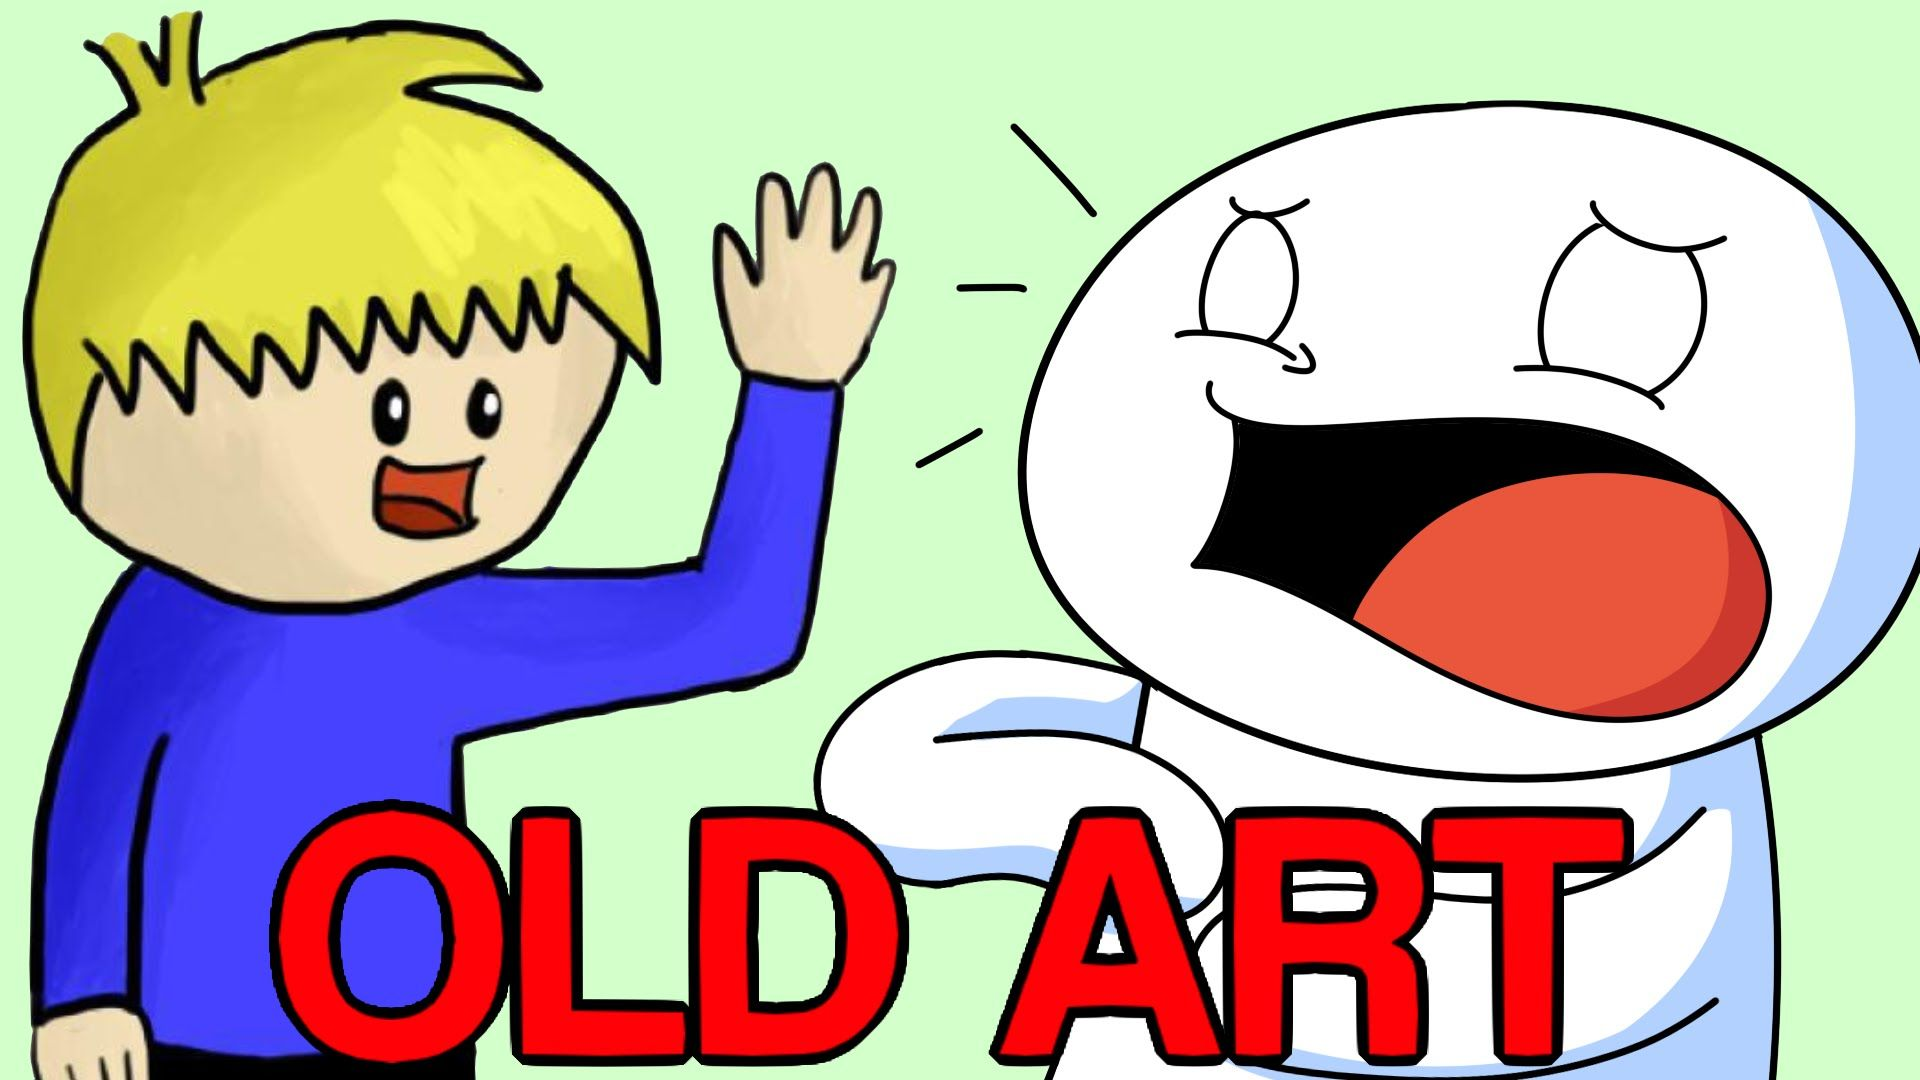 Youtube animators poised for mainstream success collider jpg 1920x1080 Odd1sout phone theodd1sout wallpaper